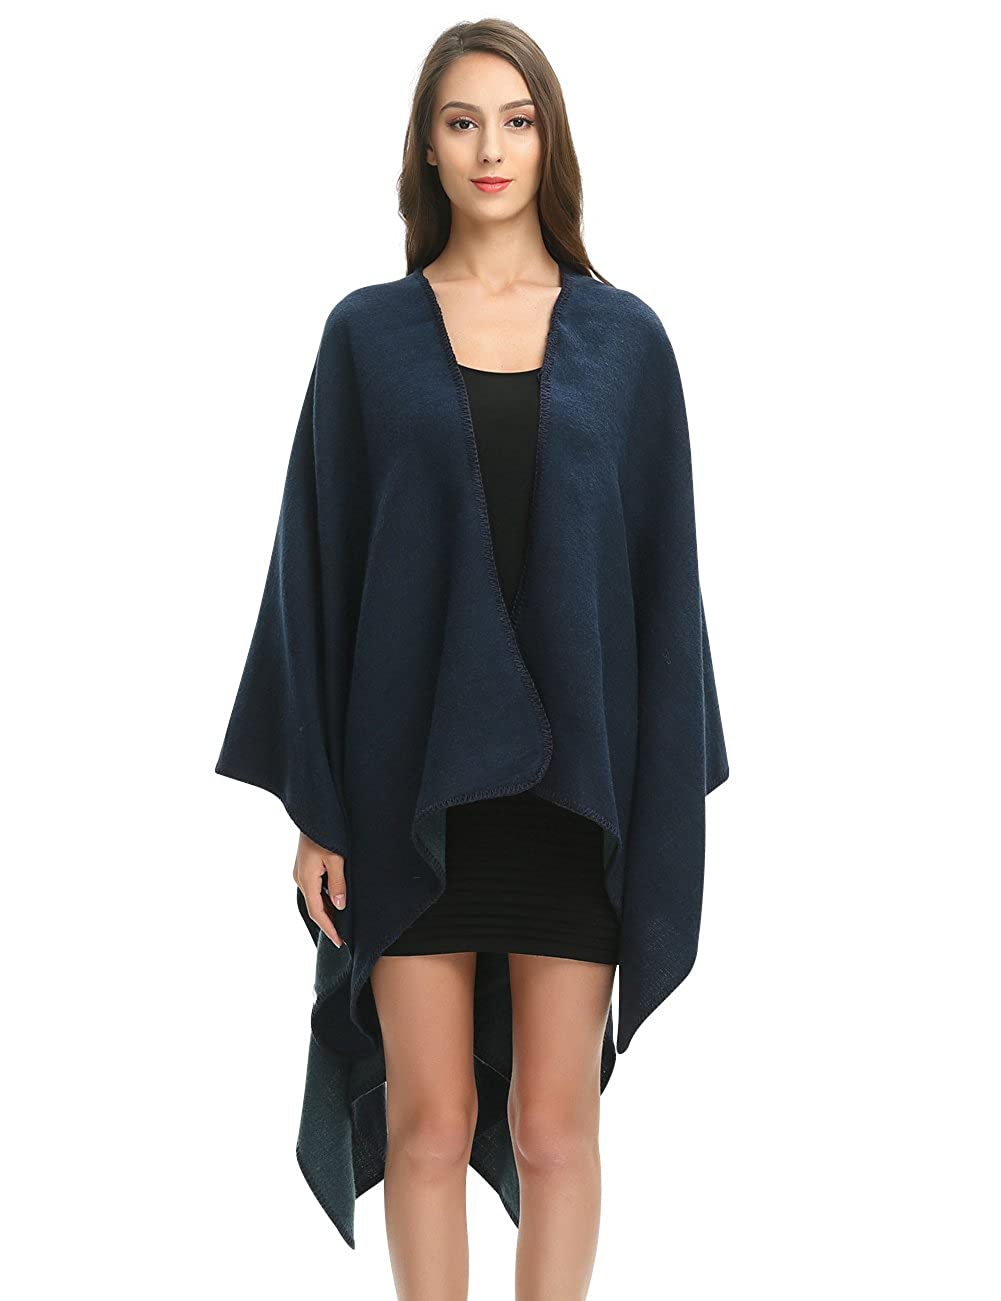 Ferand Elegant Open Front Thick Poncho Cape Knit Warm Shawl Wrap for Women One size Style 1: Black